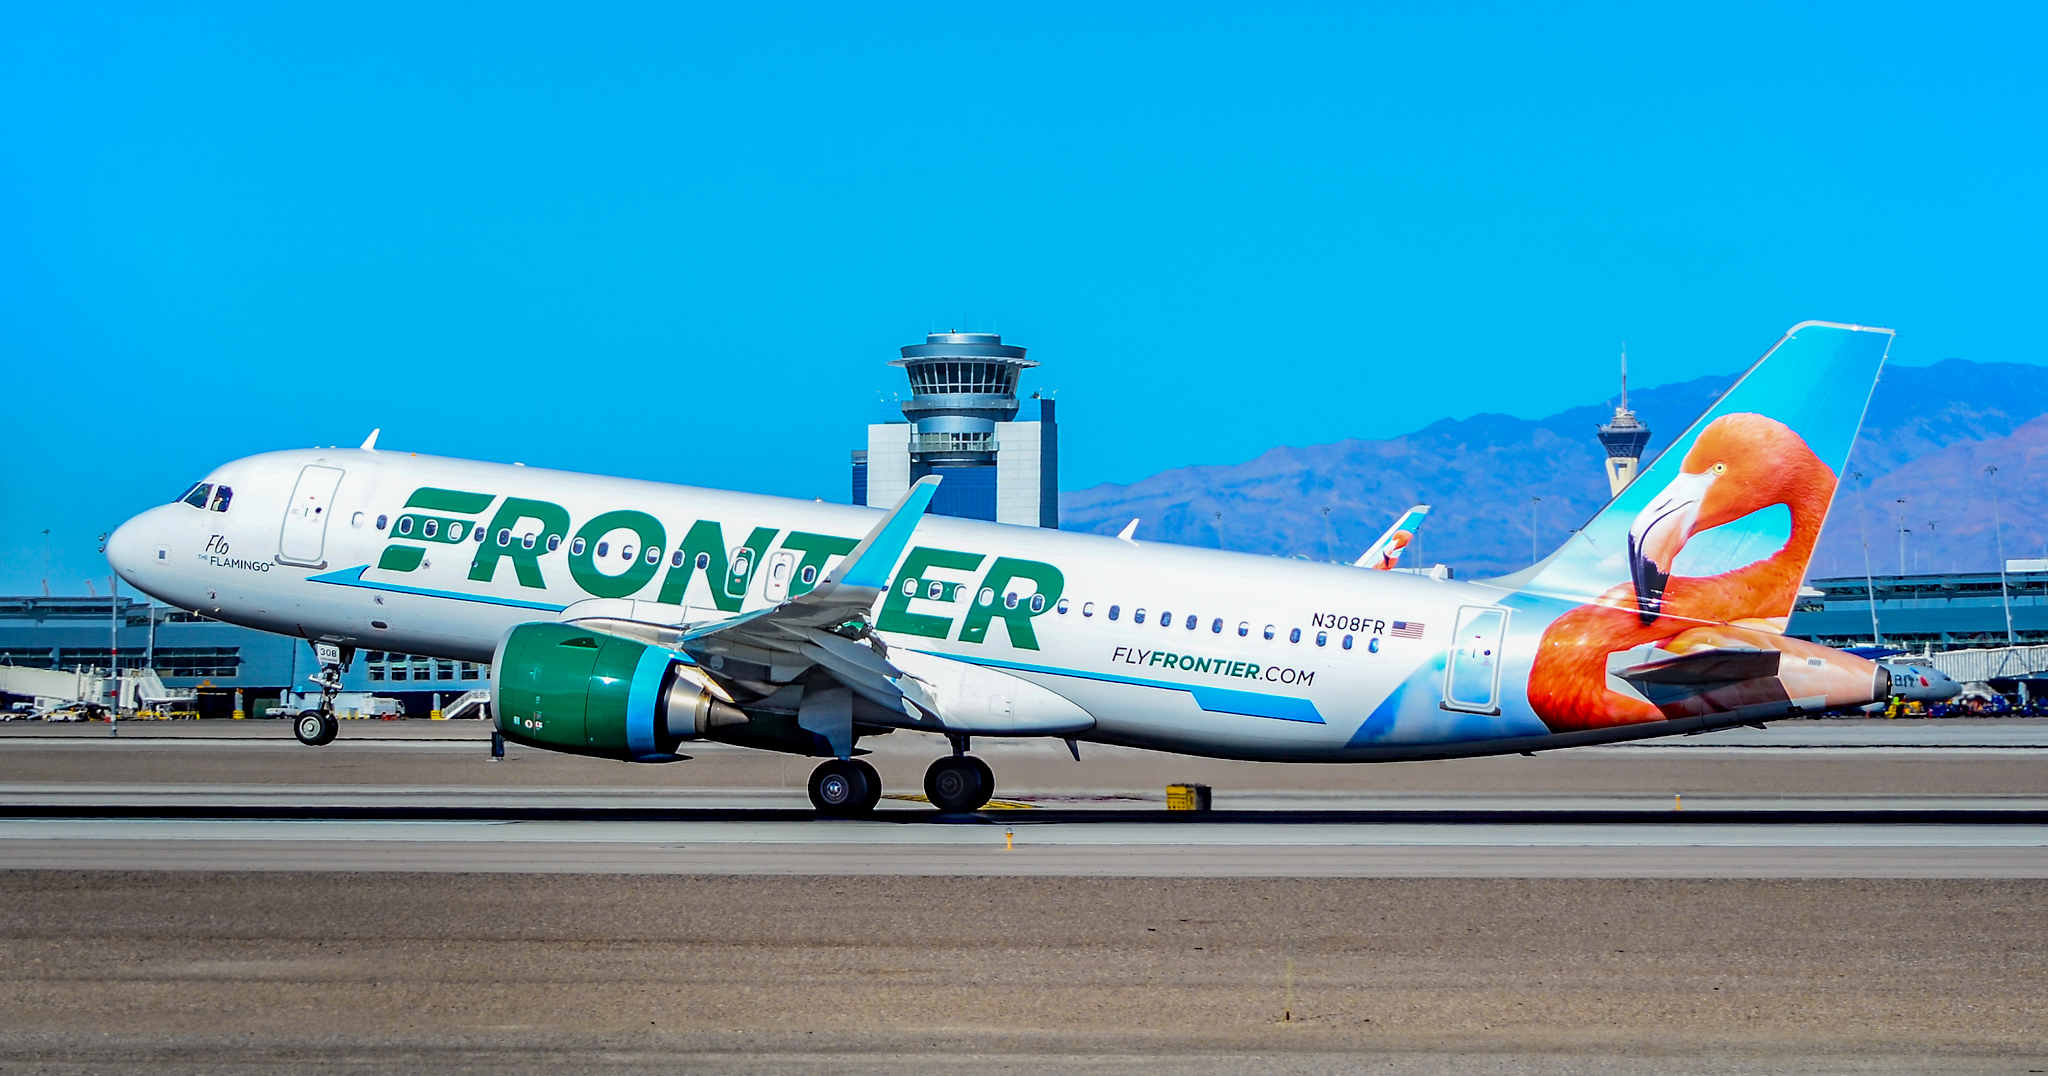 Jamaican Tourism Officials Welcome Increased Flights by Frontier Airlines